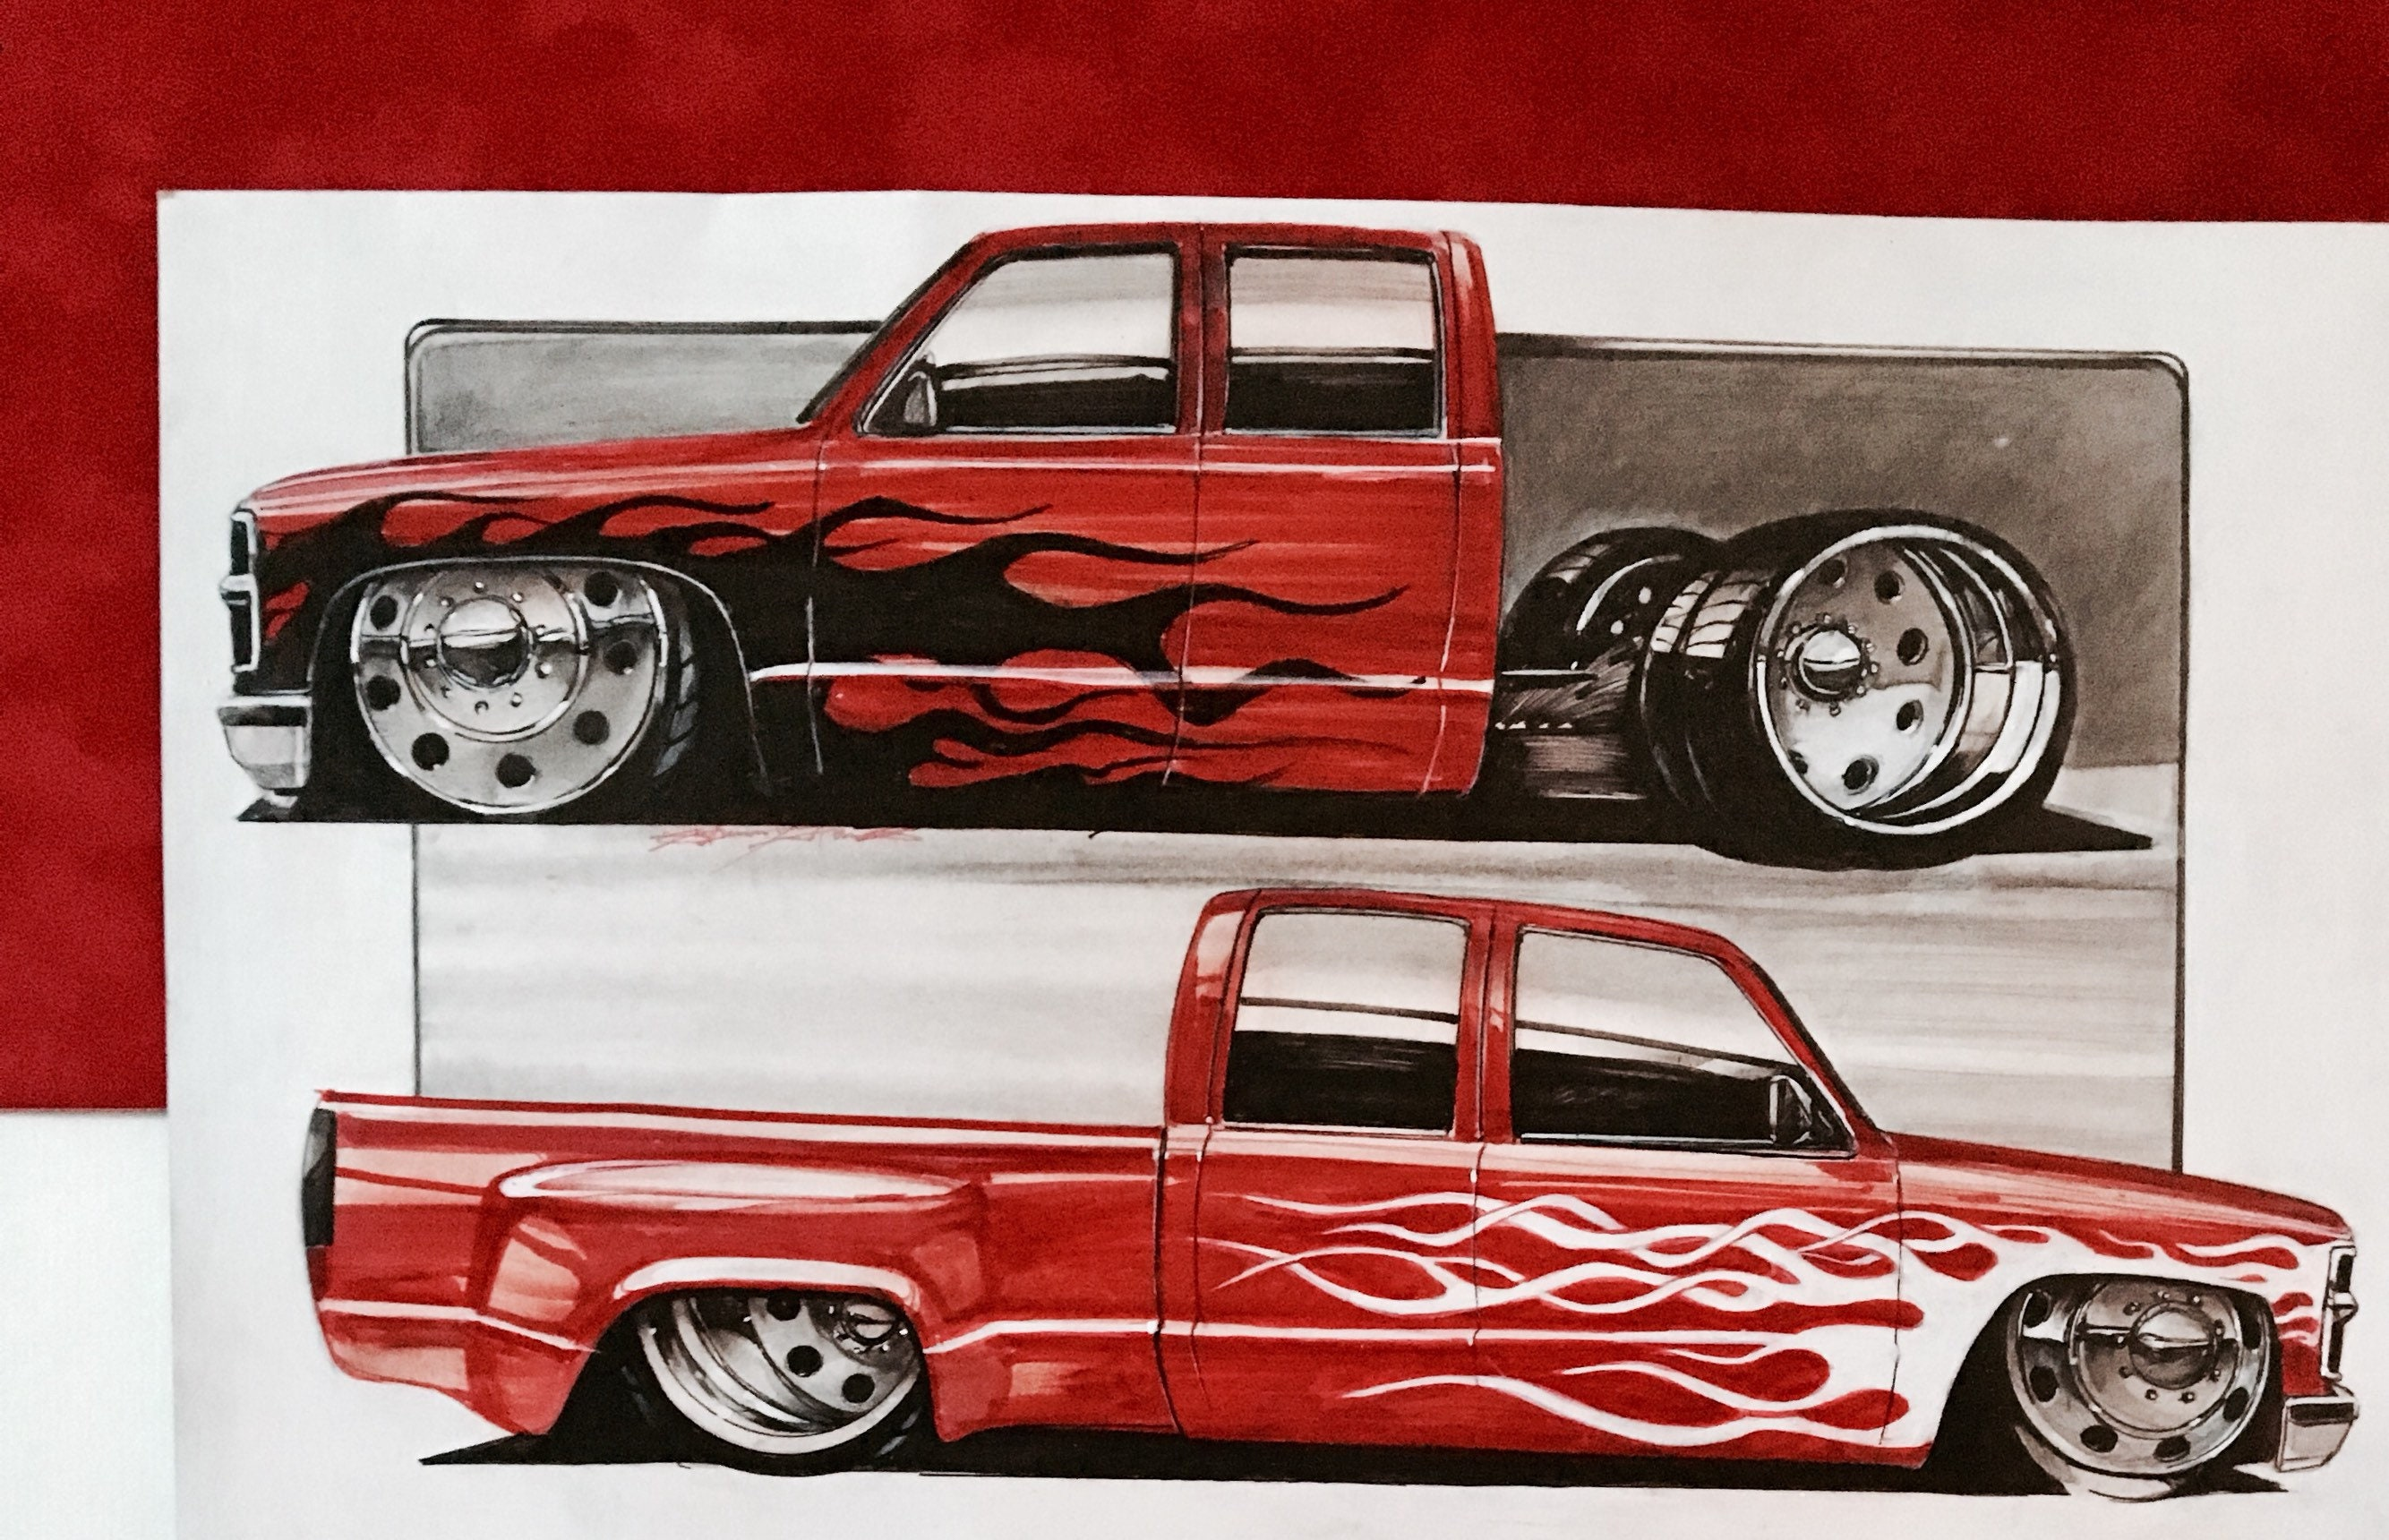 Chevy Wall Art Bagged Truck Hotrod Etsy 1949 Image 0 1